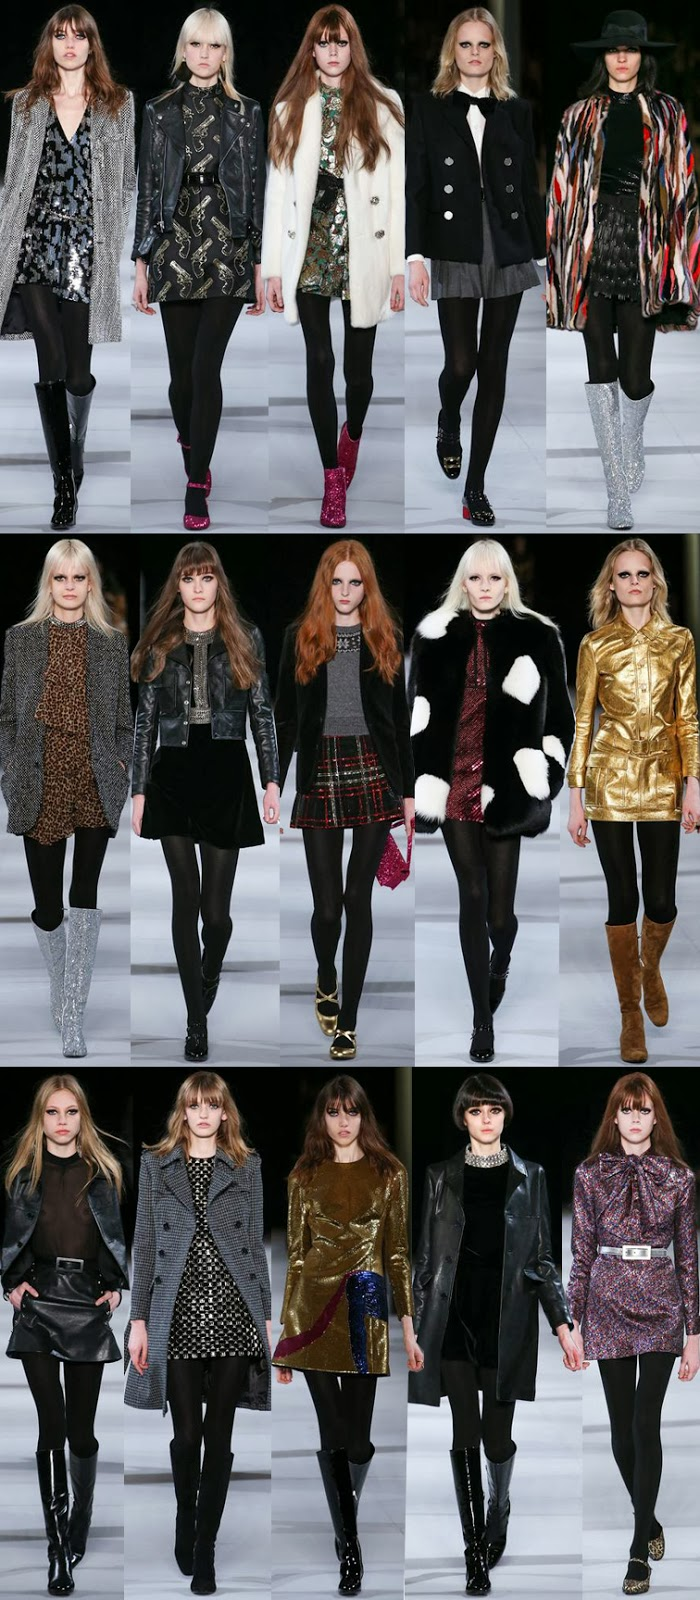 Saint Laurent by Hedi Slimane fall winter 2014 runway collection, PFW, Paris fashion week, FW14, AW14